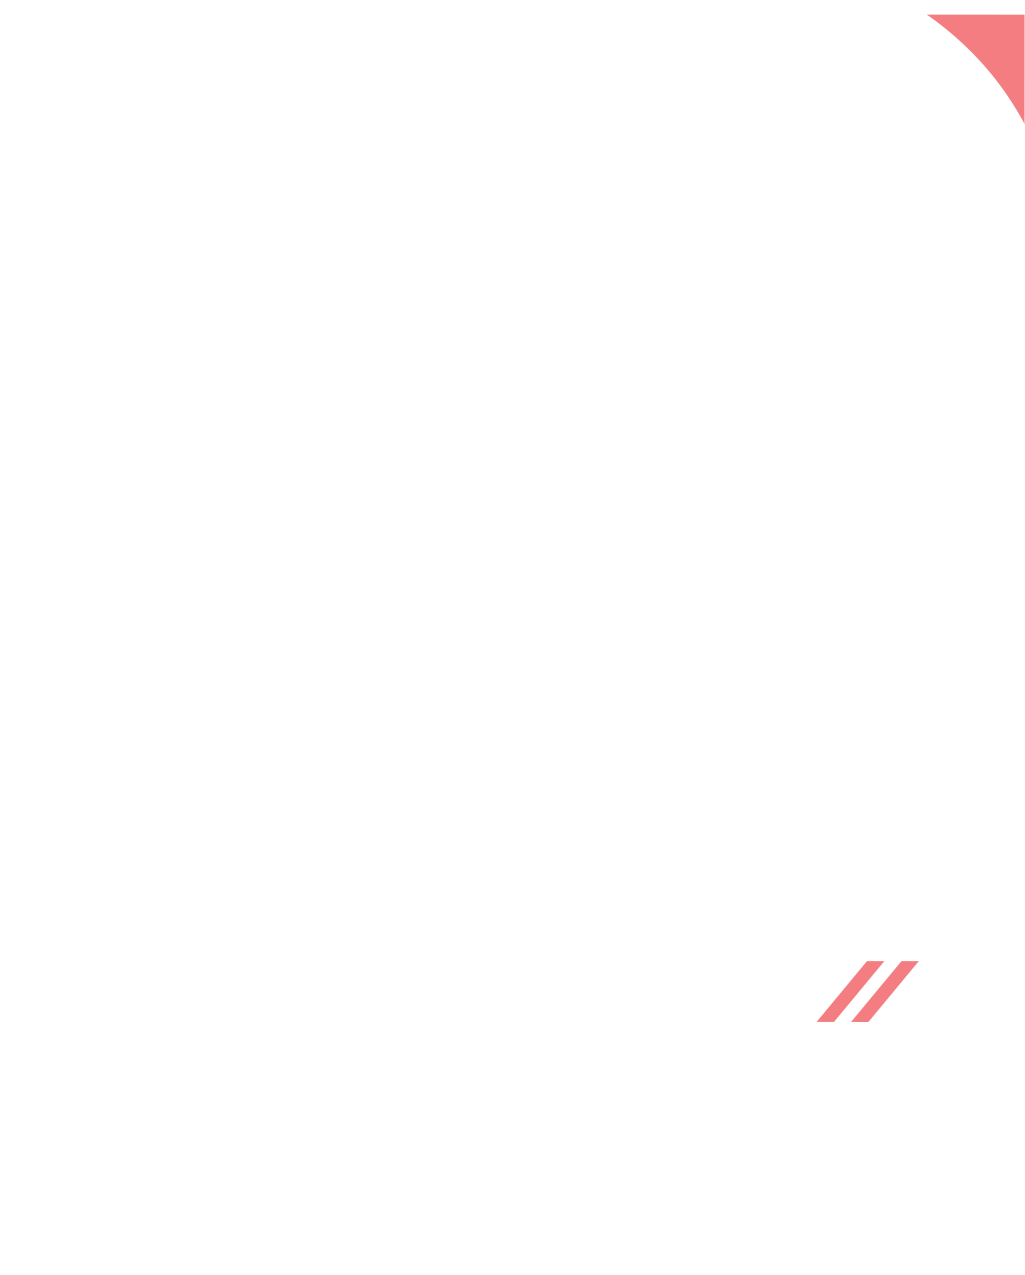 O'Neal 50 Years Faster